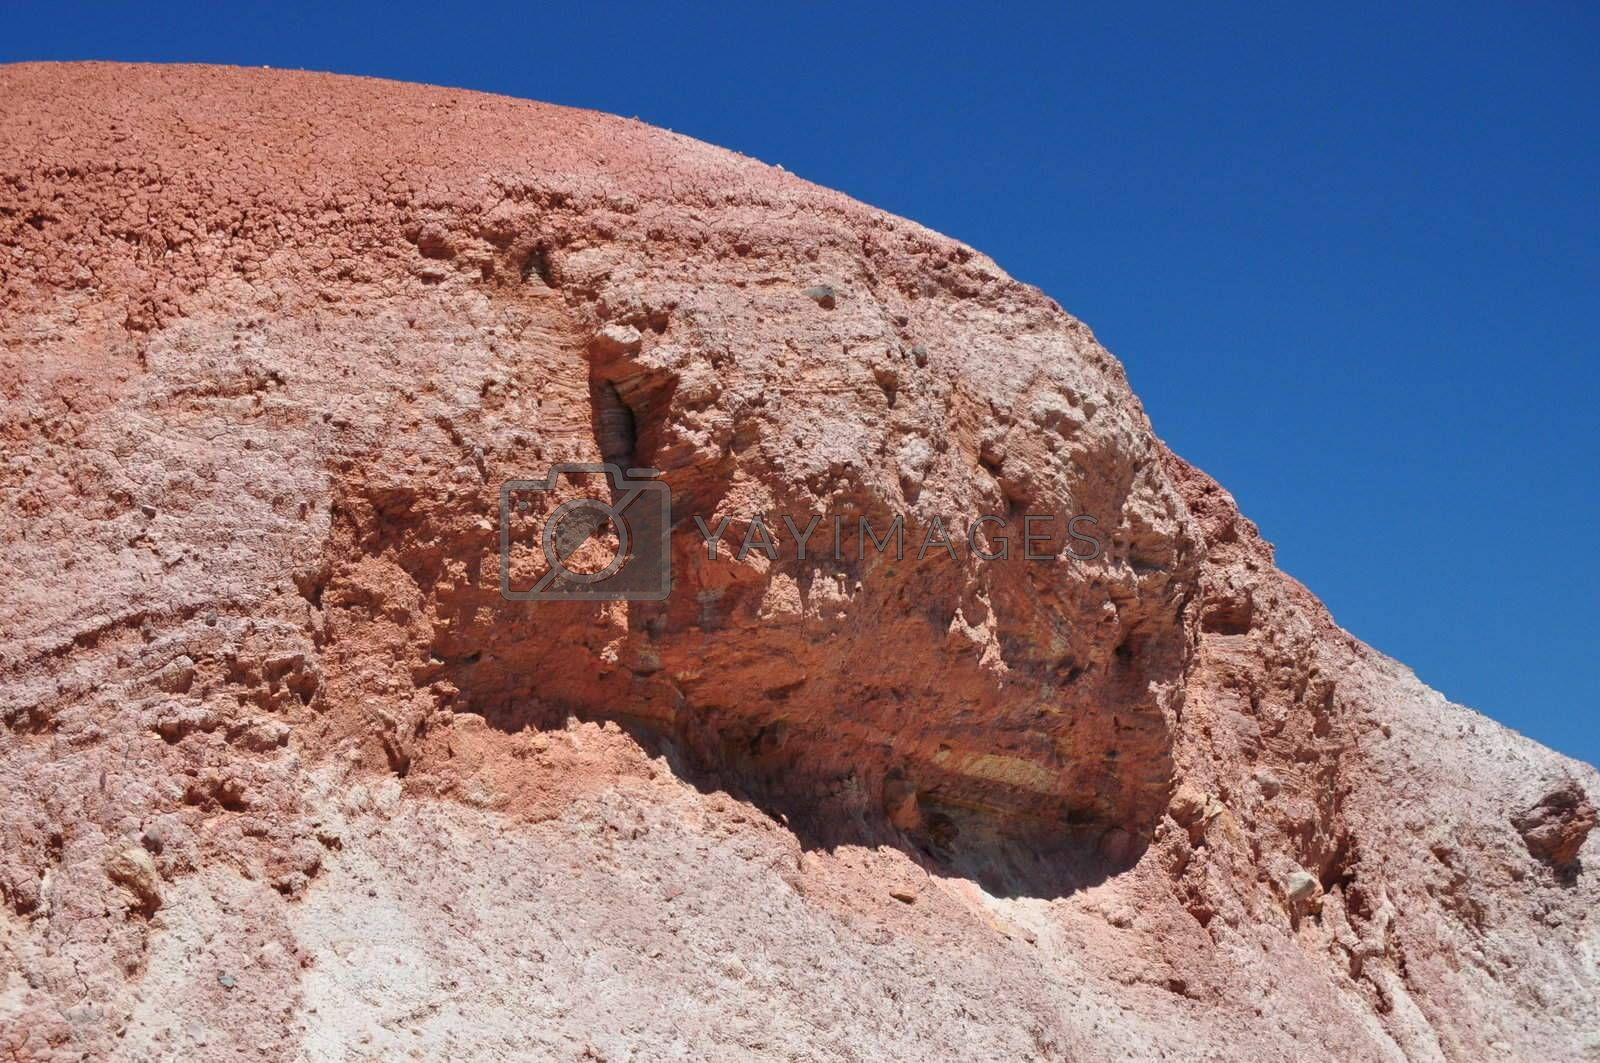 Rock formation in the Hallett Cove Conservation Park, South Australia.